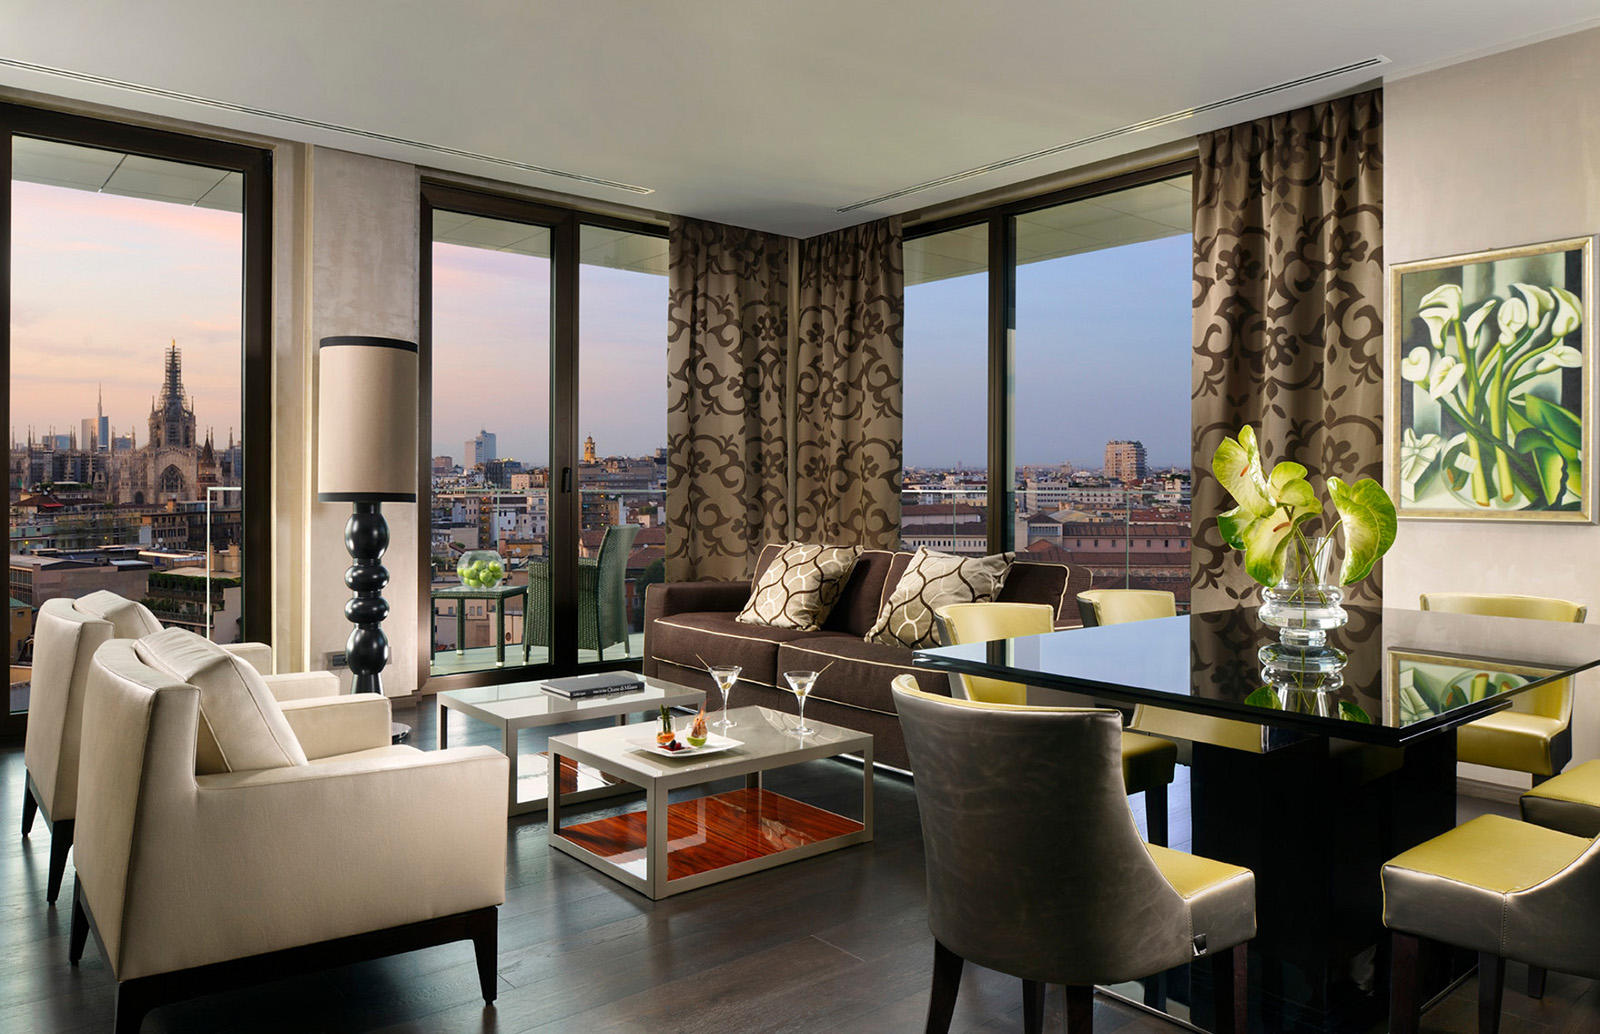 Presidential Suite at Uptown Palace in Milan